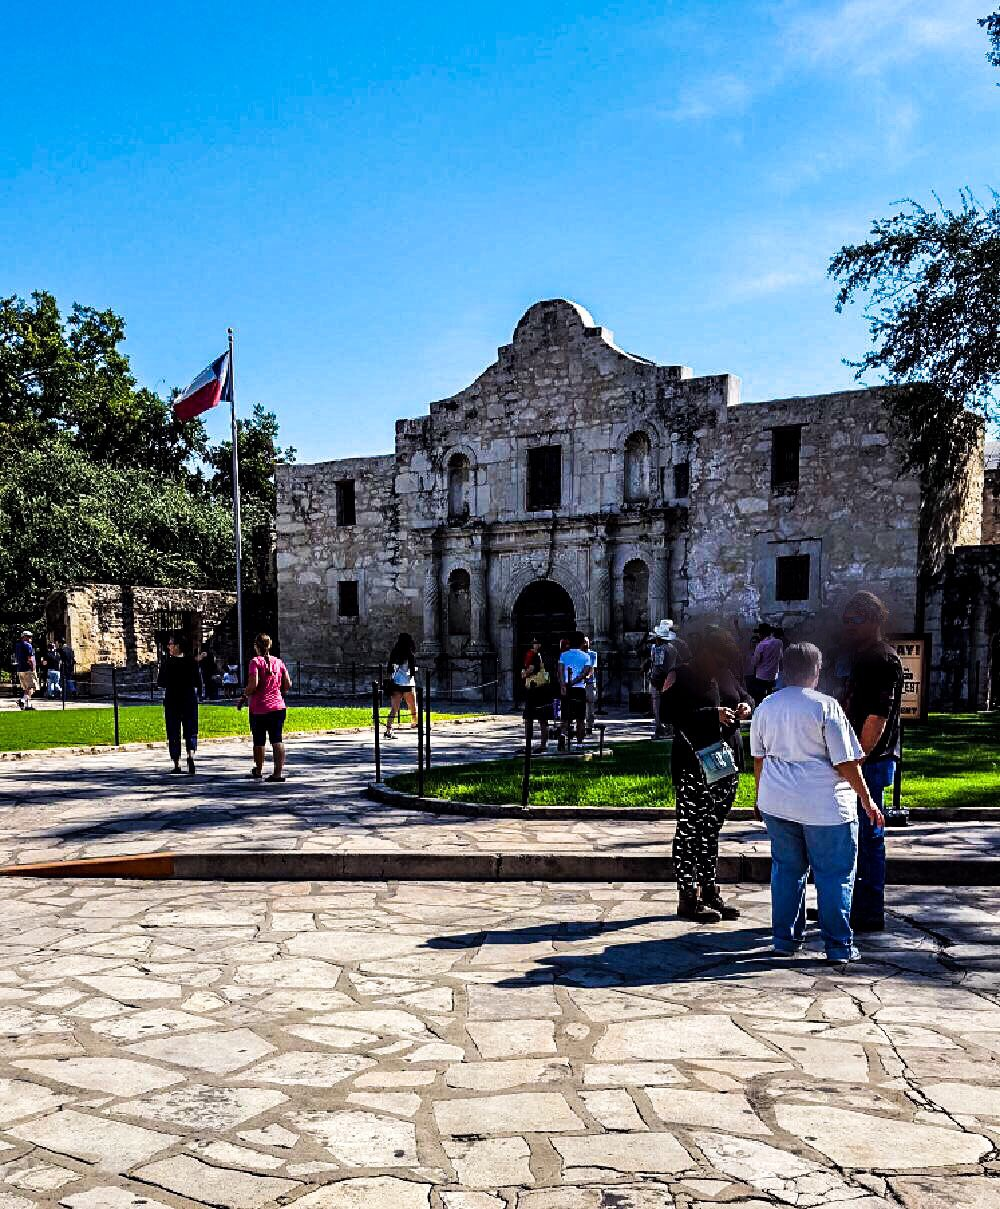 The Alamo mission San Antonio Texas